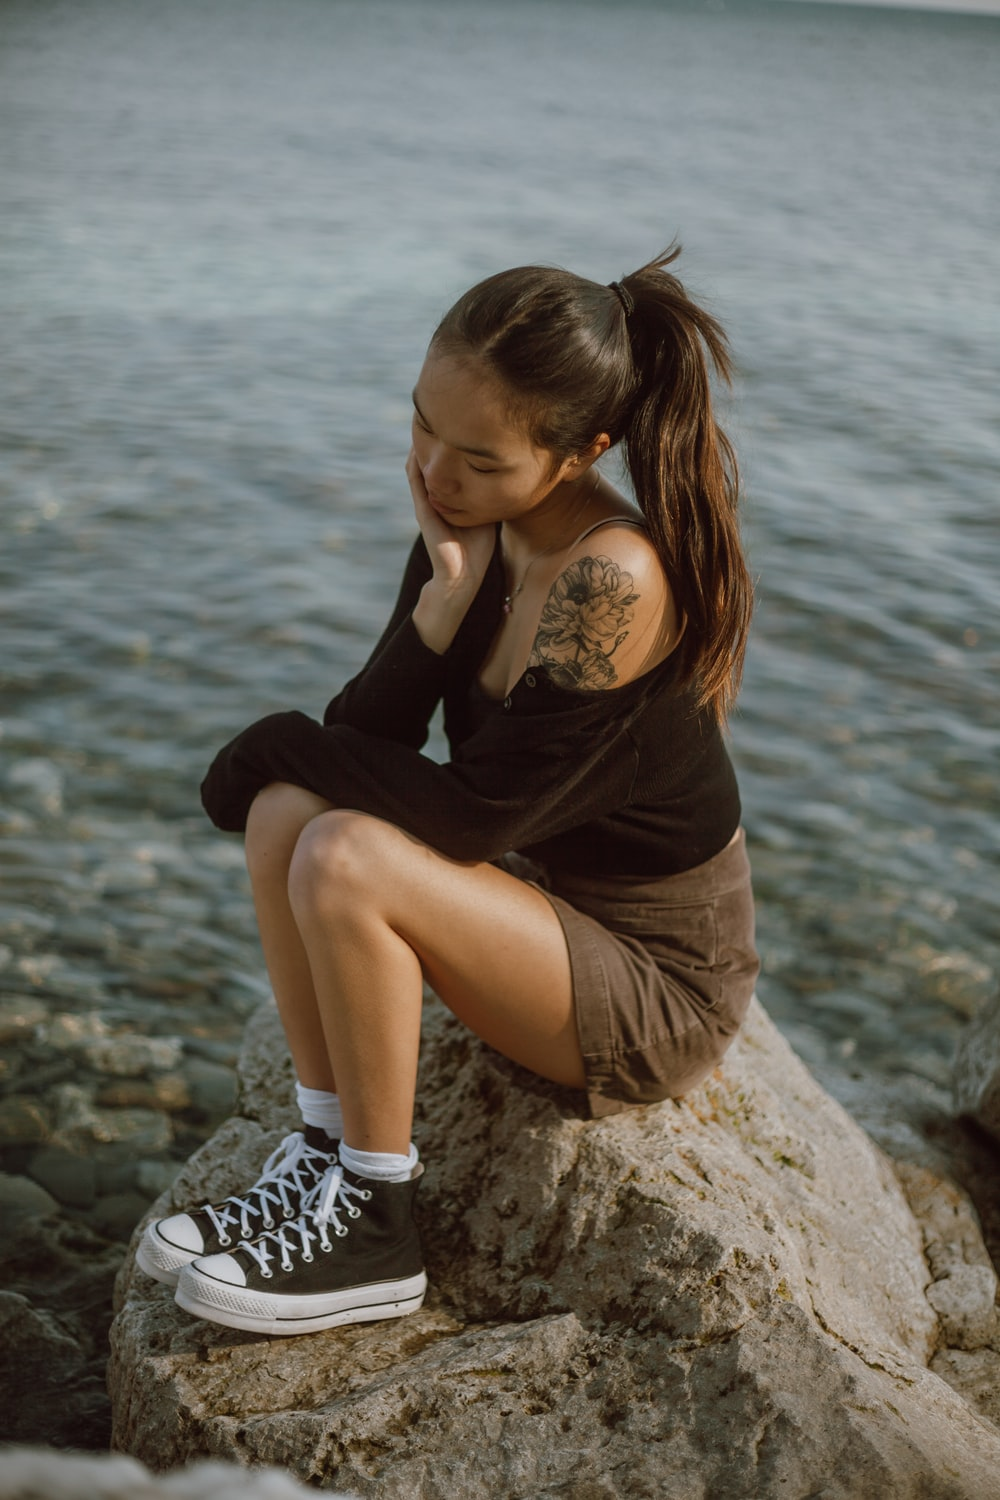 woman in black long sleeve shirt and black and white shorts sitting on rock near body